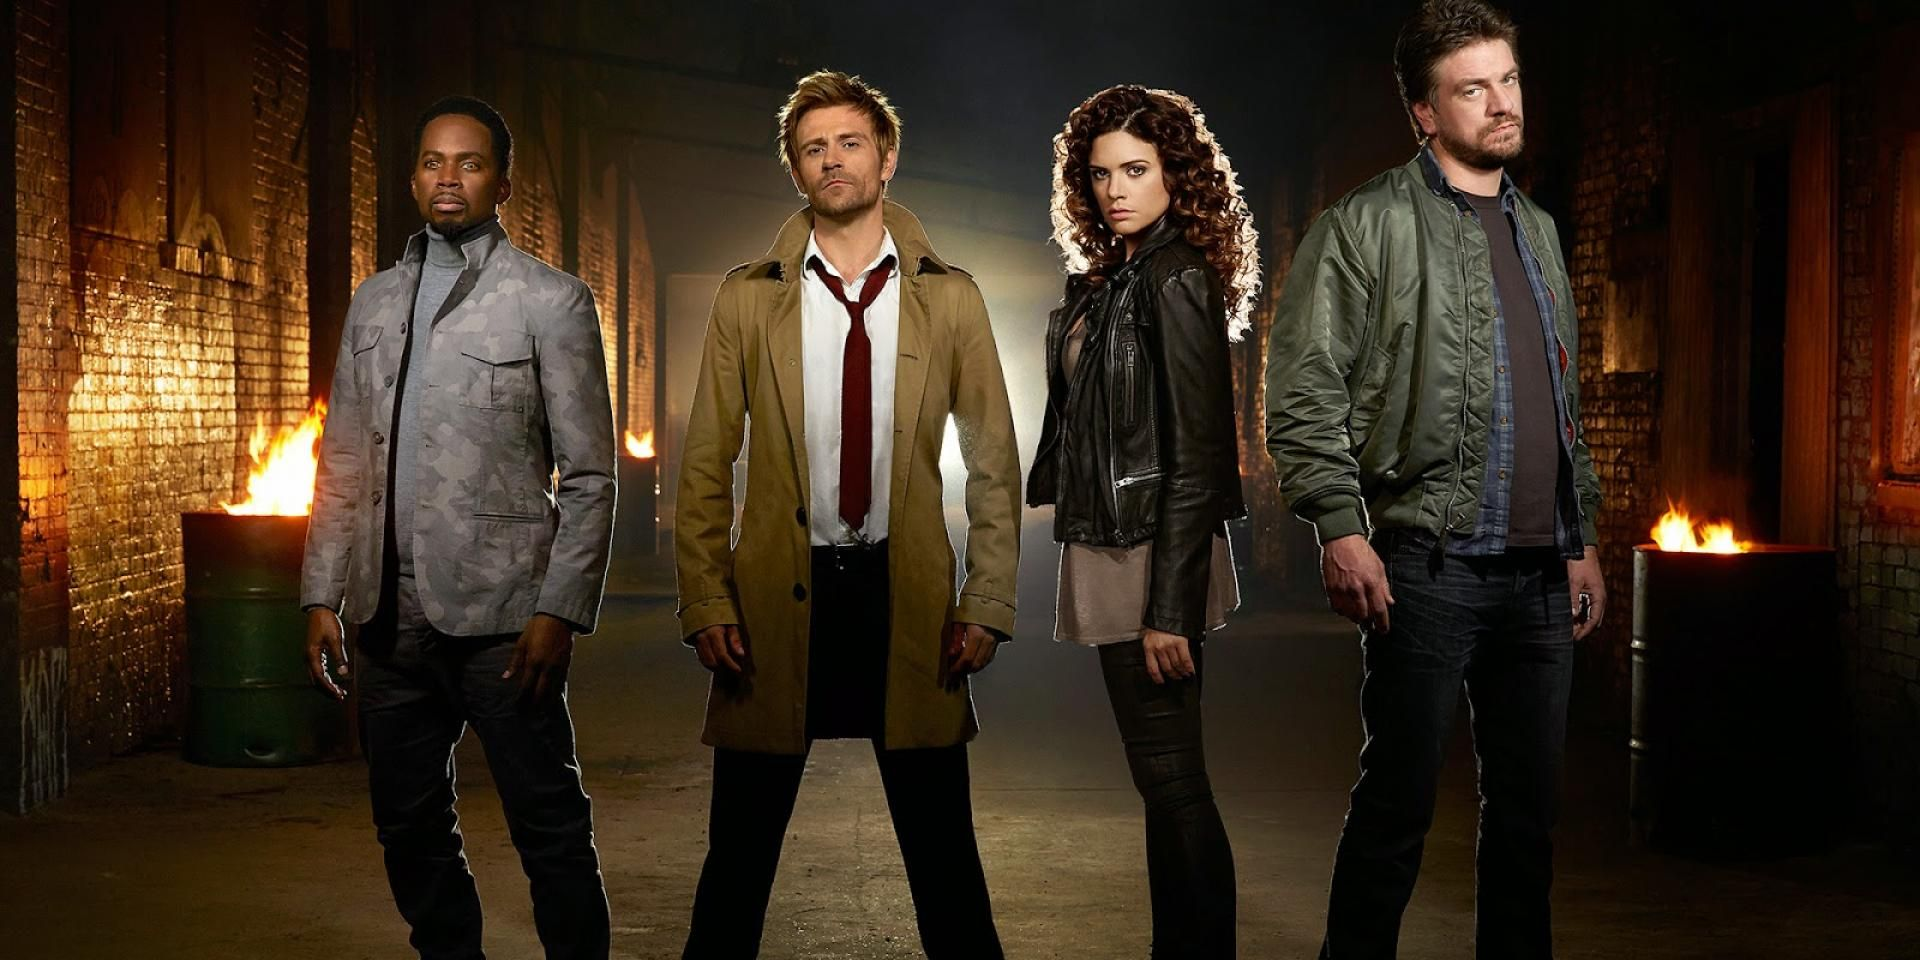 First Look At Dc S Papa Midnite In New Clip From Nbc S Constantine Series Constantine Tv Show Constantine Series Constantine Tv